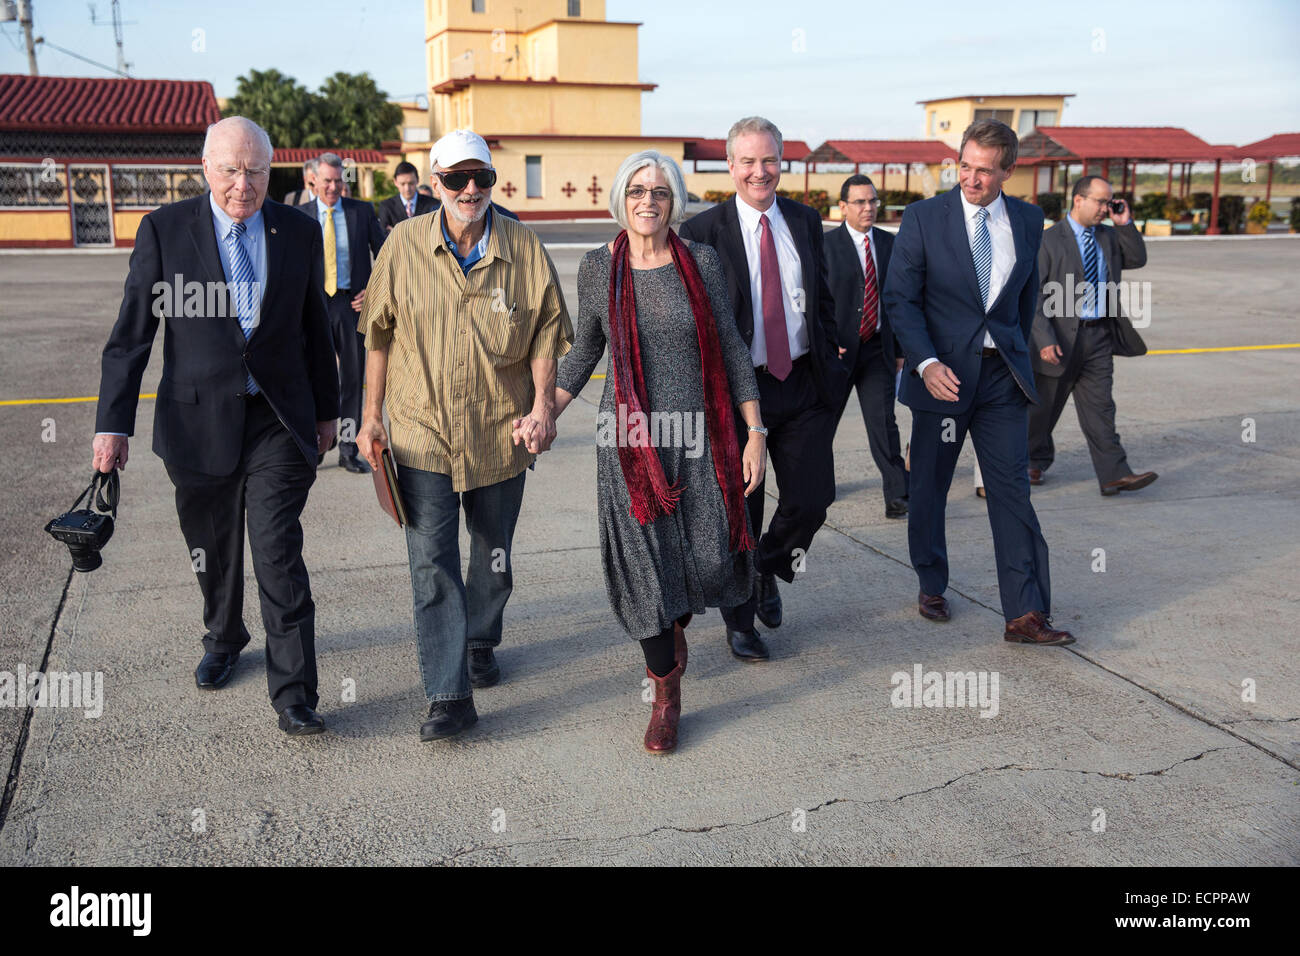 Havana, Cuba. 17th Dec, 2014. Photo provided by the White House shows U.S. contractor Alan Gross (2nd L Front) holding - Stock Image